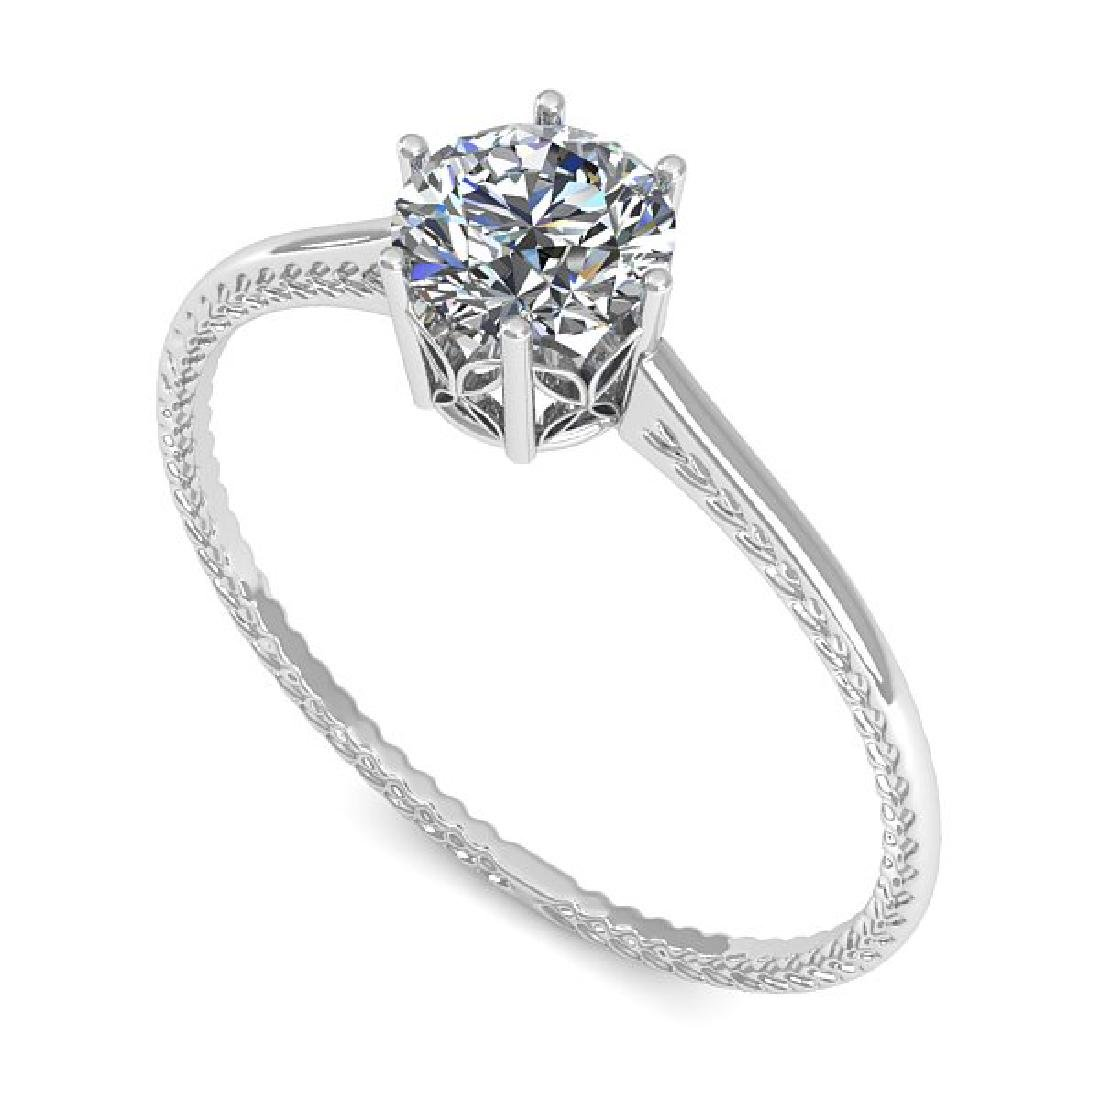 0.51 CTW VS/SI Diamond Art Deco Ring 14K White Gold - 2